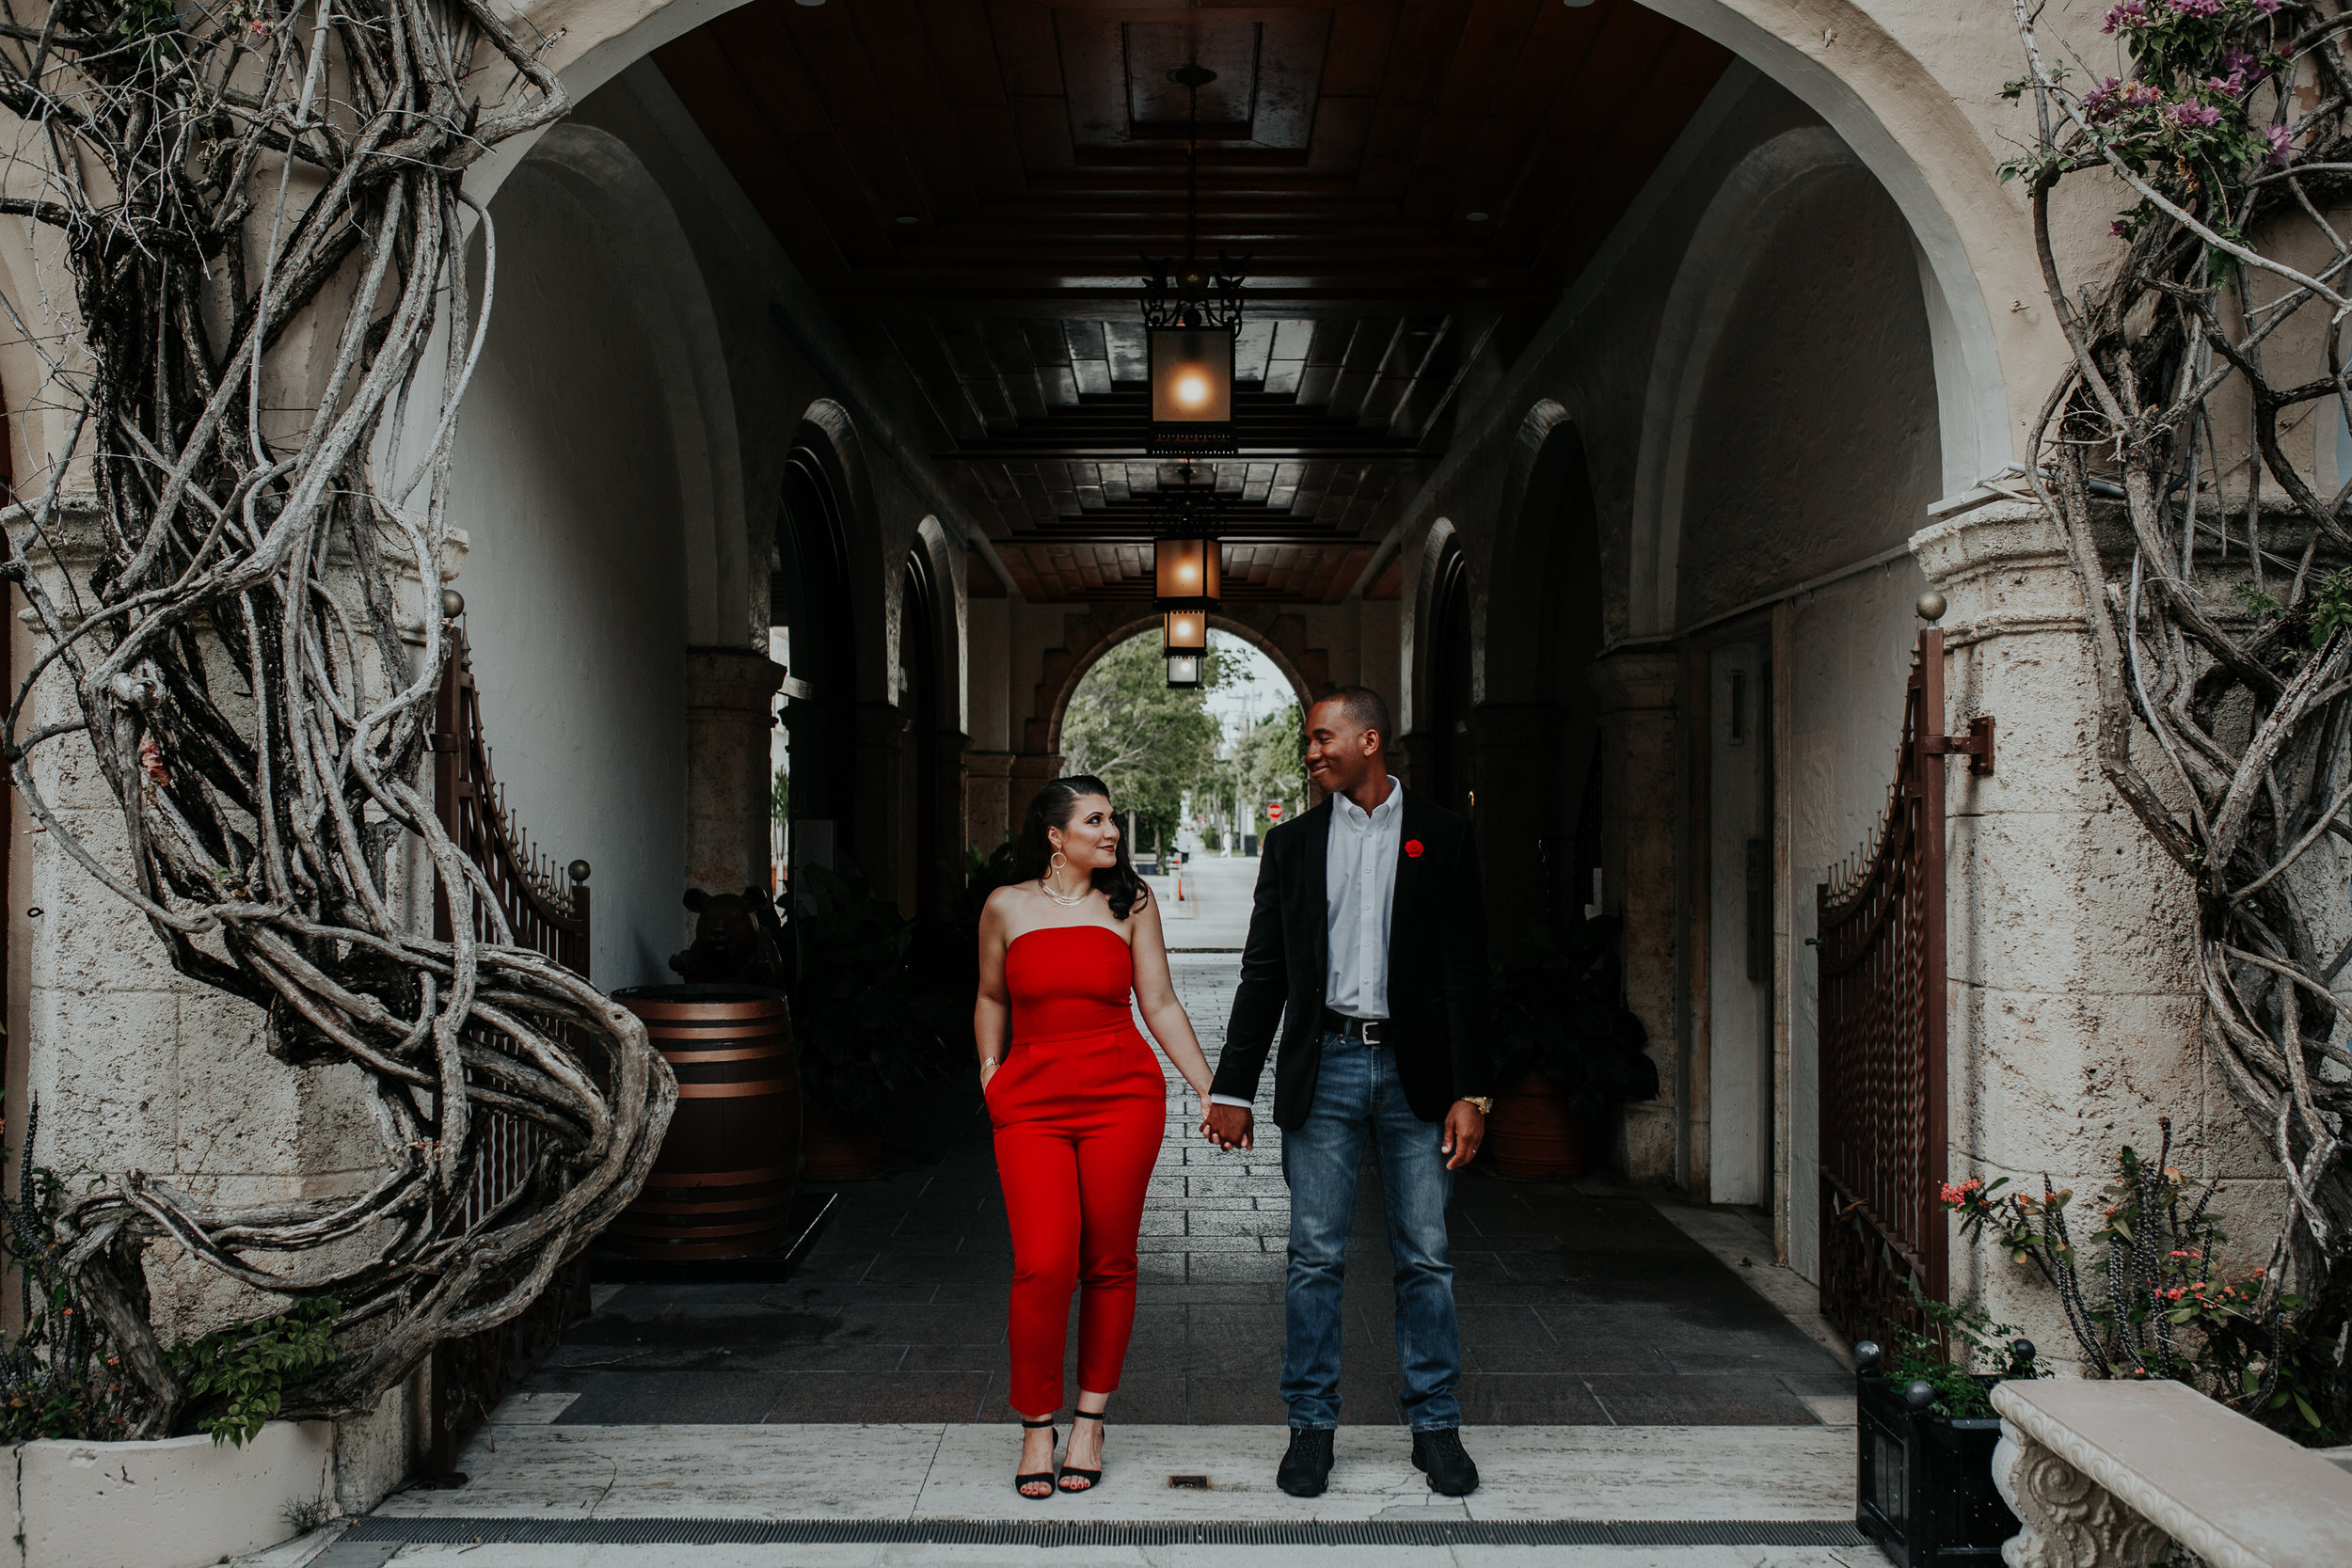 Sabrina & Bashaum - What do you do before your anniversary dinner? Get real dolled up and have a photo shoot, duh. I ran around West Palm Beach with these two and the pops of red were hotter than the actual temp in Florida, no lie.